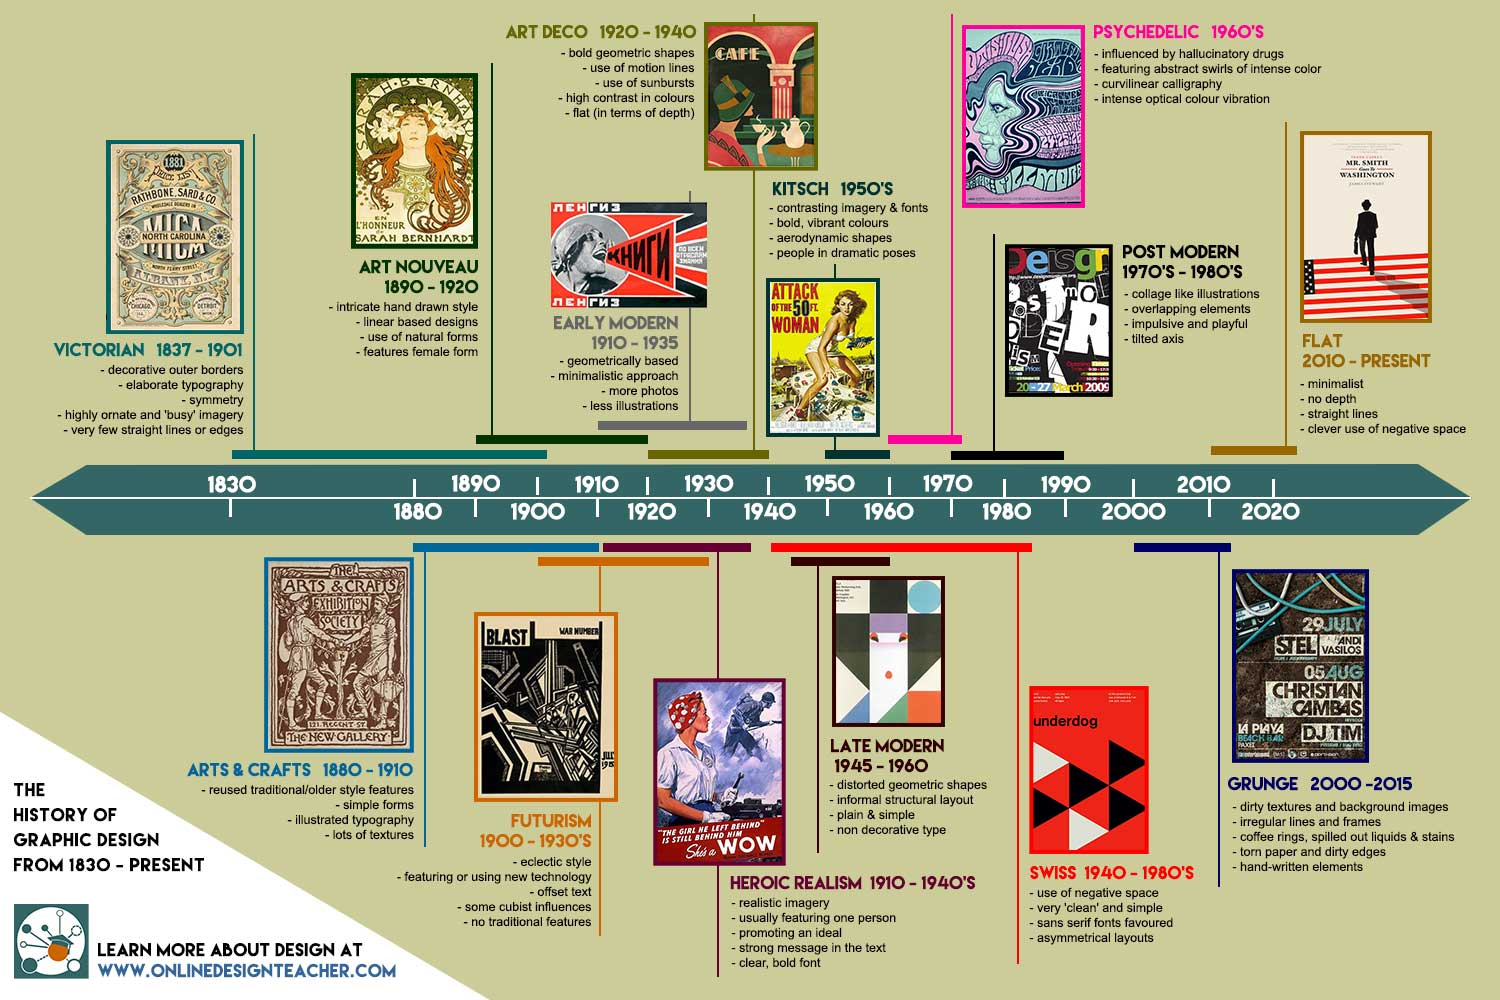 The Graphic Design Timeline